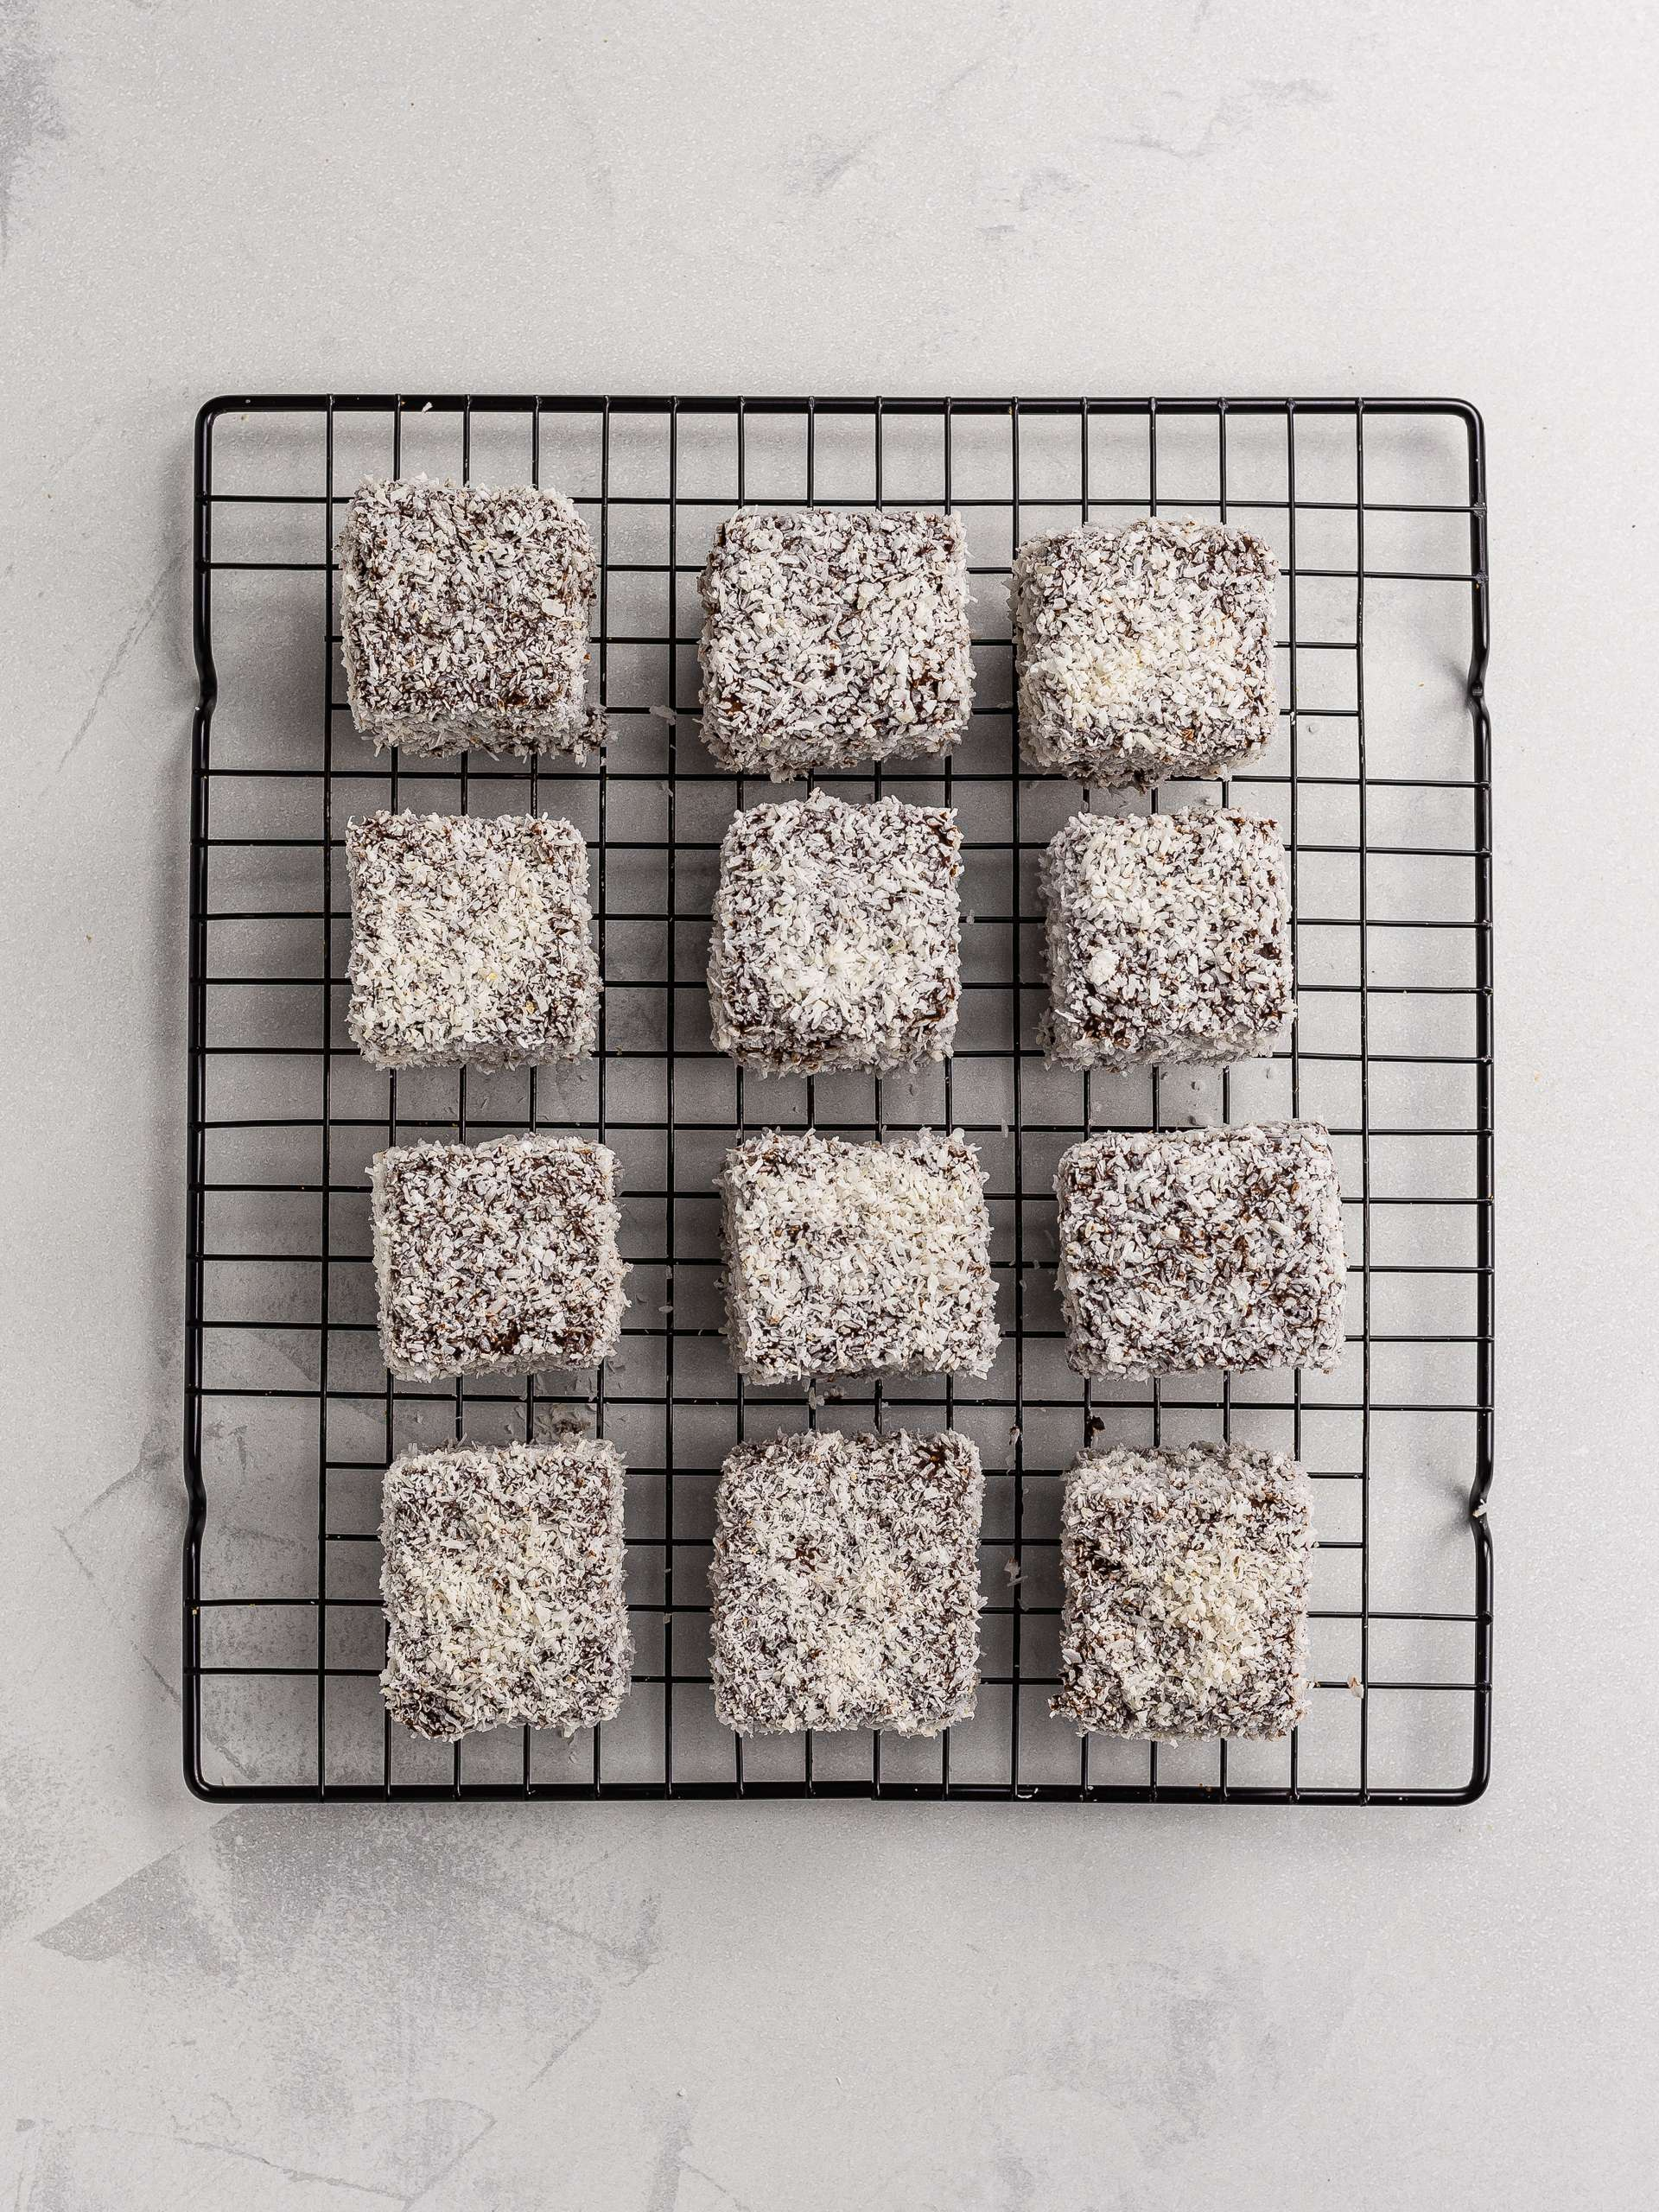 coconut and chocolate coated lamingtons